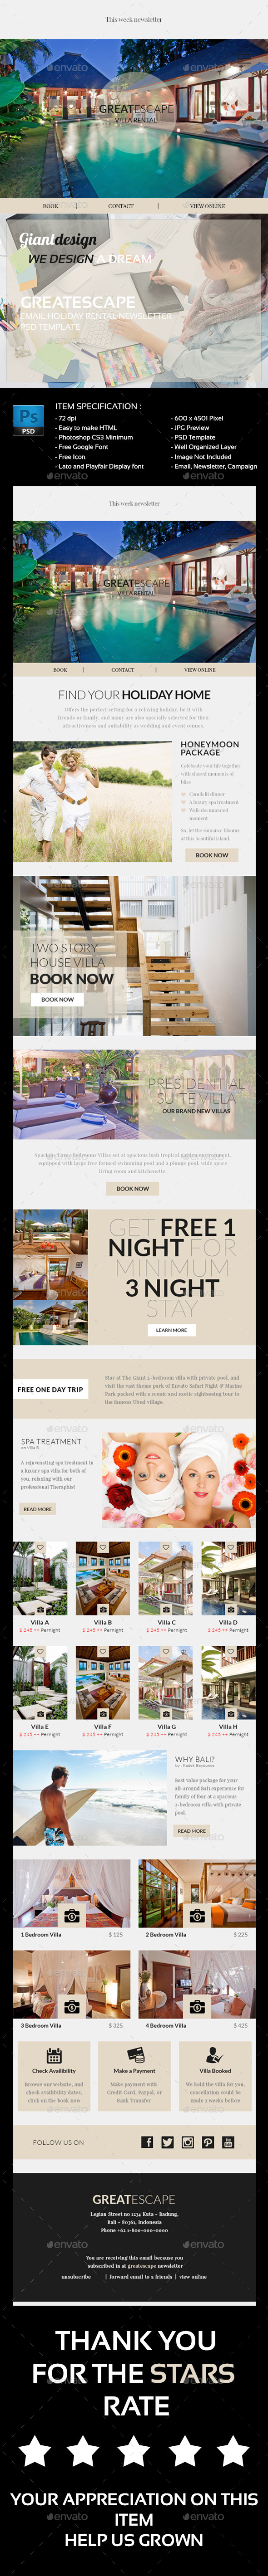 GraphicRiver Great Escape Psd Email Newsletter 10764872